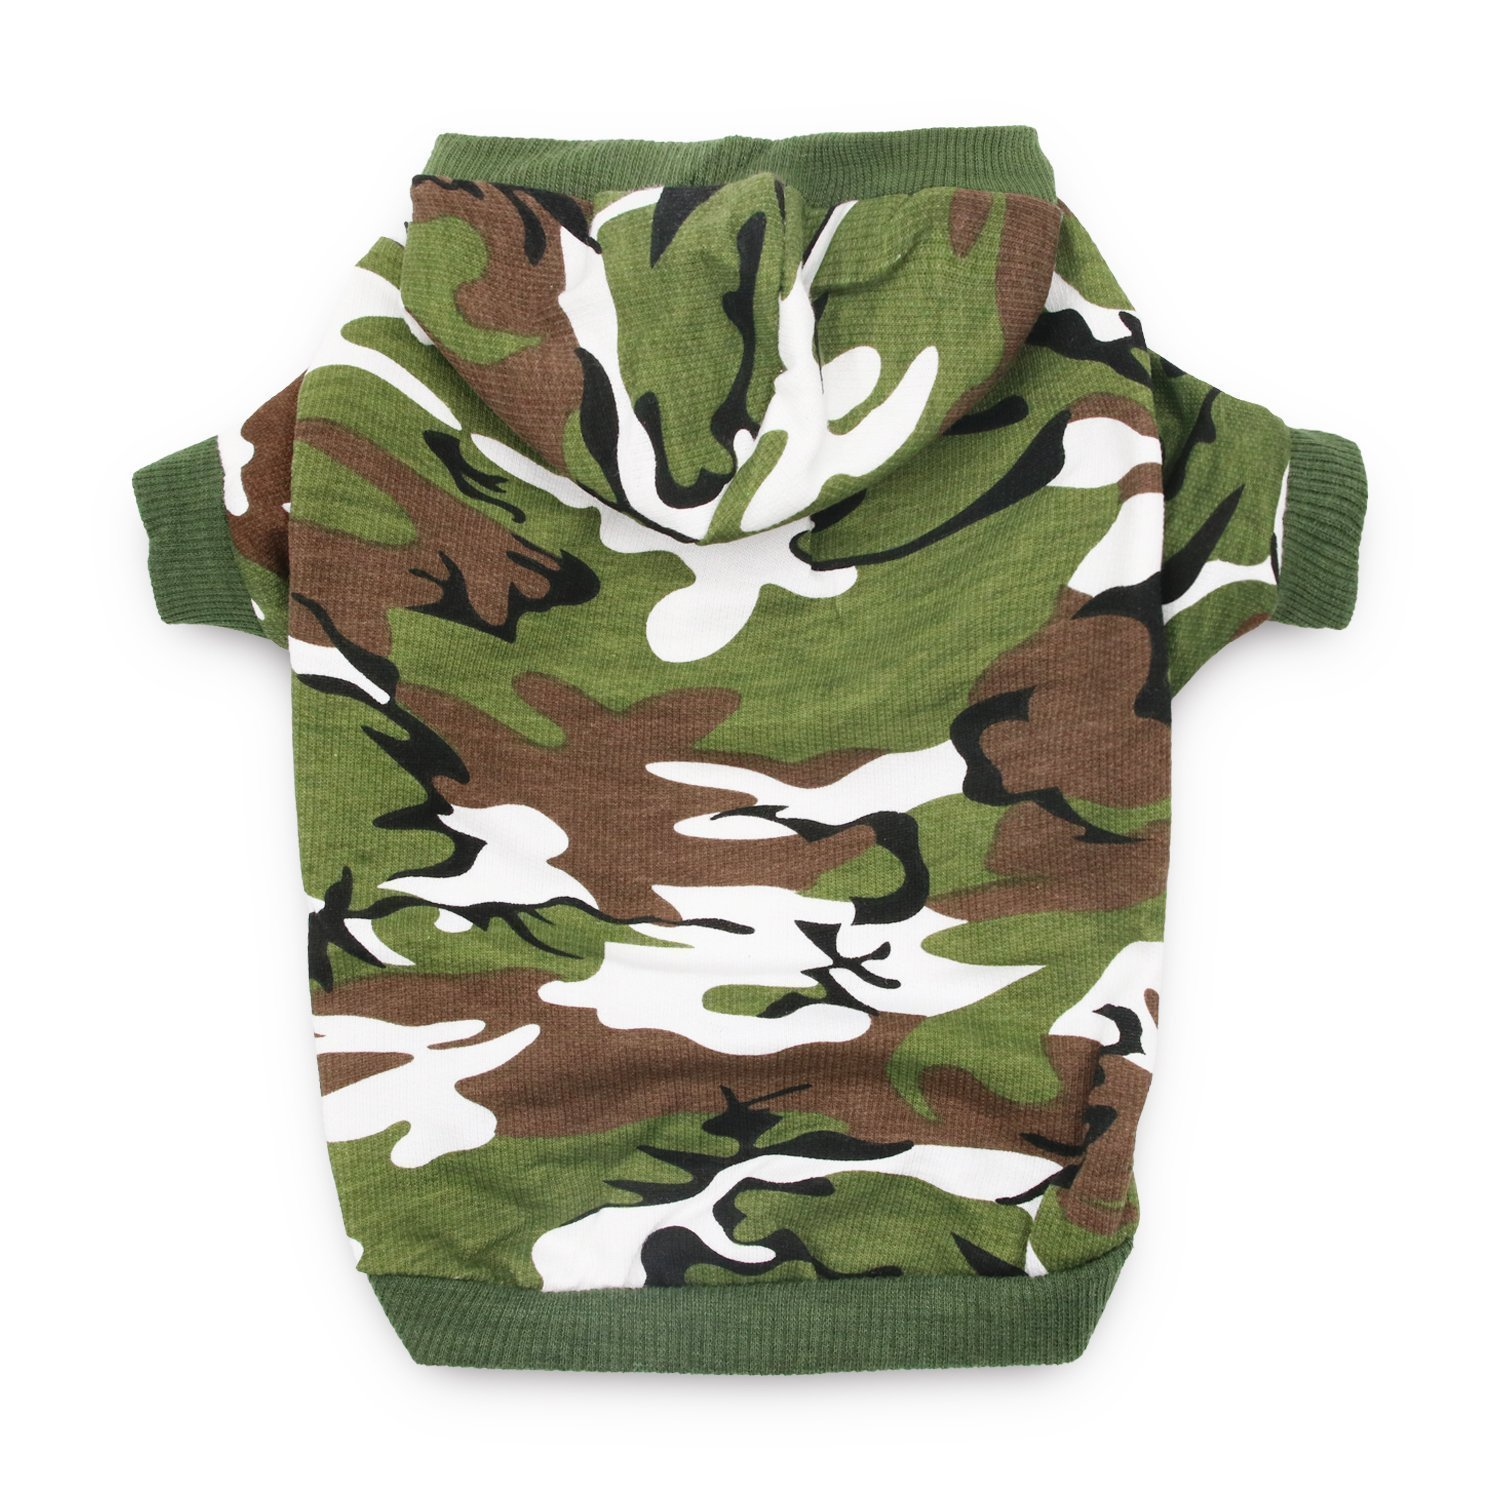 Army Green XXXXX-Large (Neck  19.7'' Chest  33.1'') Army Green XXXXX-Large (Neck  19.7'' Chest  33.1'') DroolingDog Dog Clothes for Large Dogs Boy Dog Hoodie XXXXXL Dog Shirts for Dogs, XXXXXL, Green